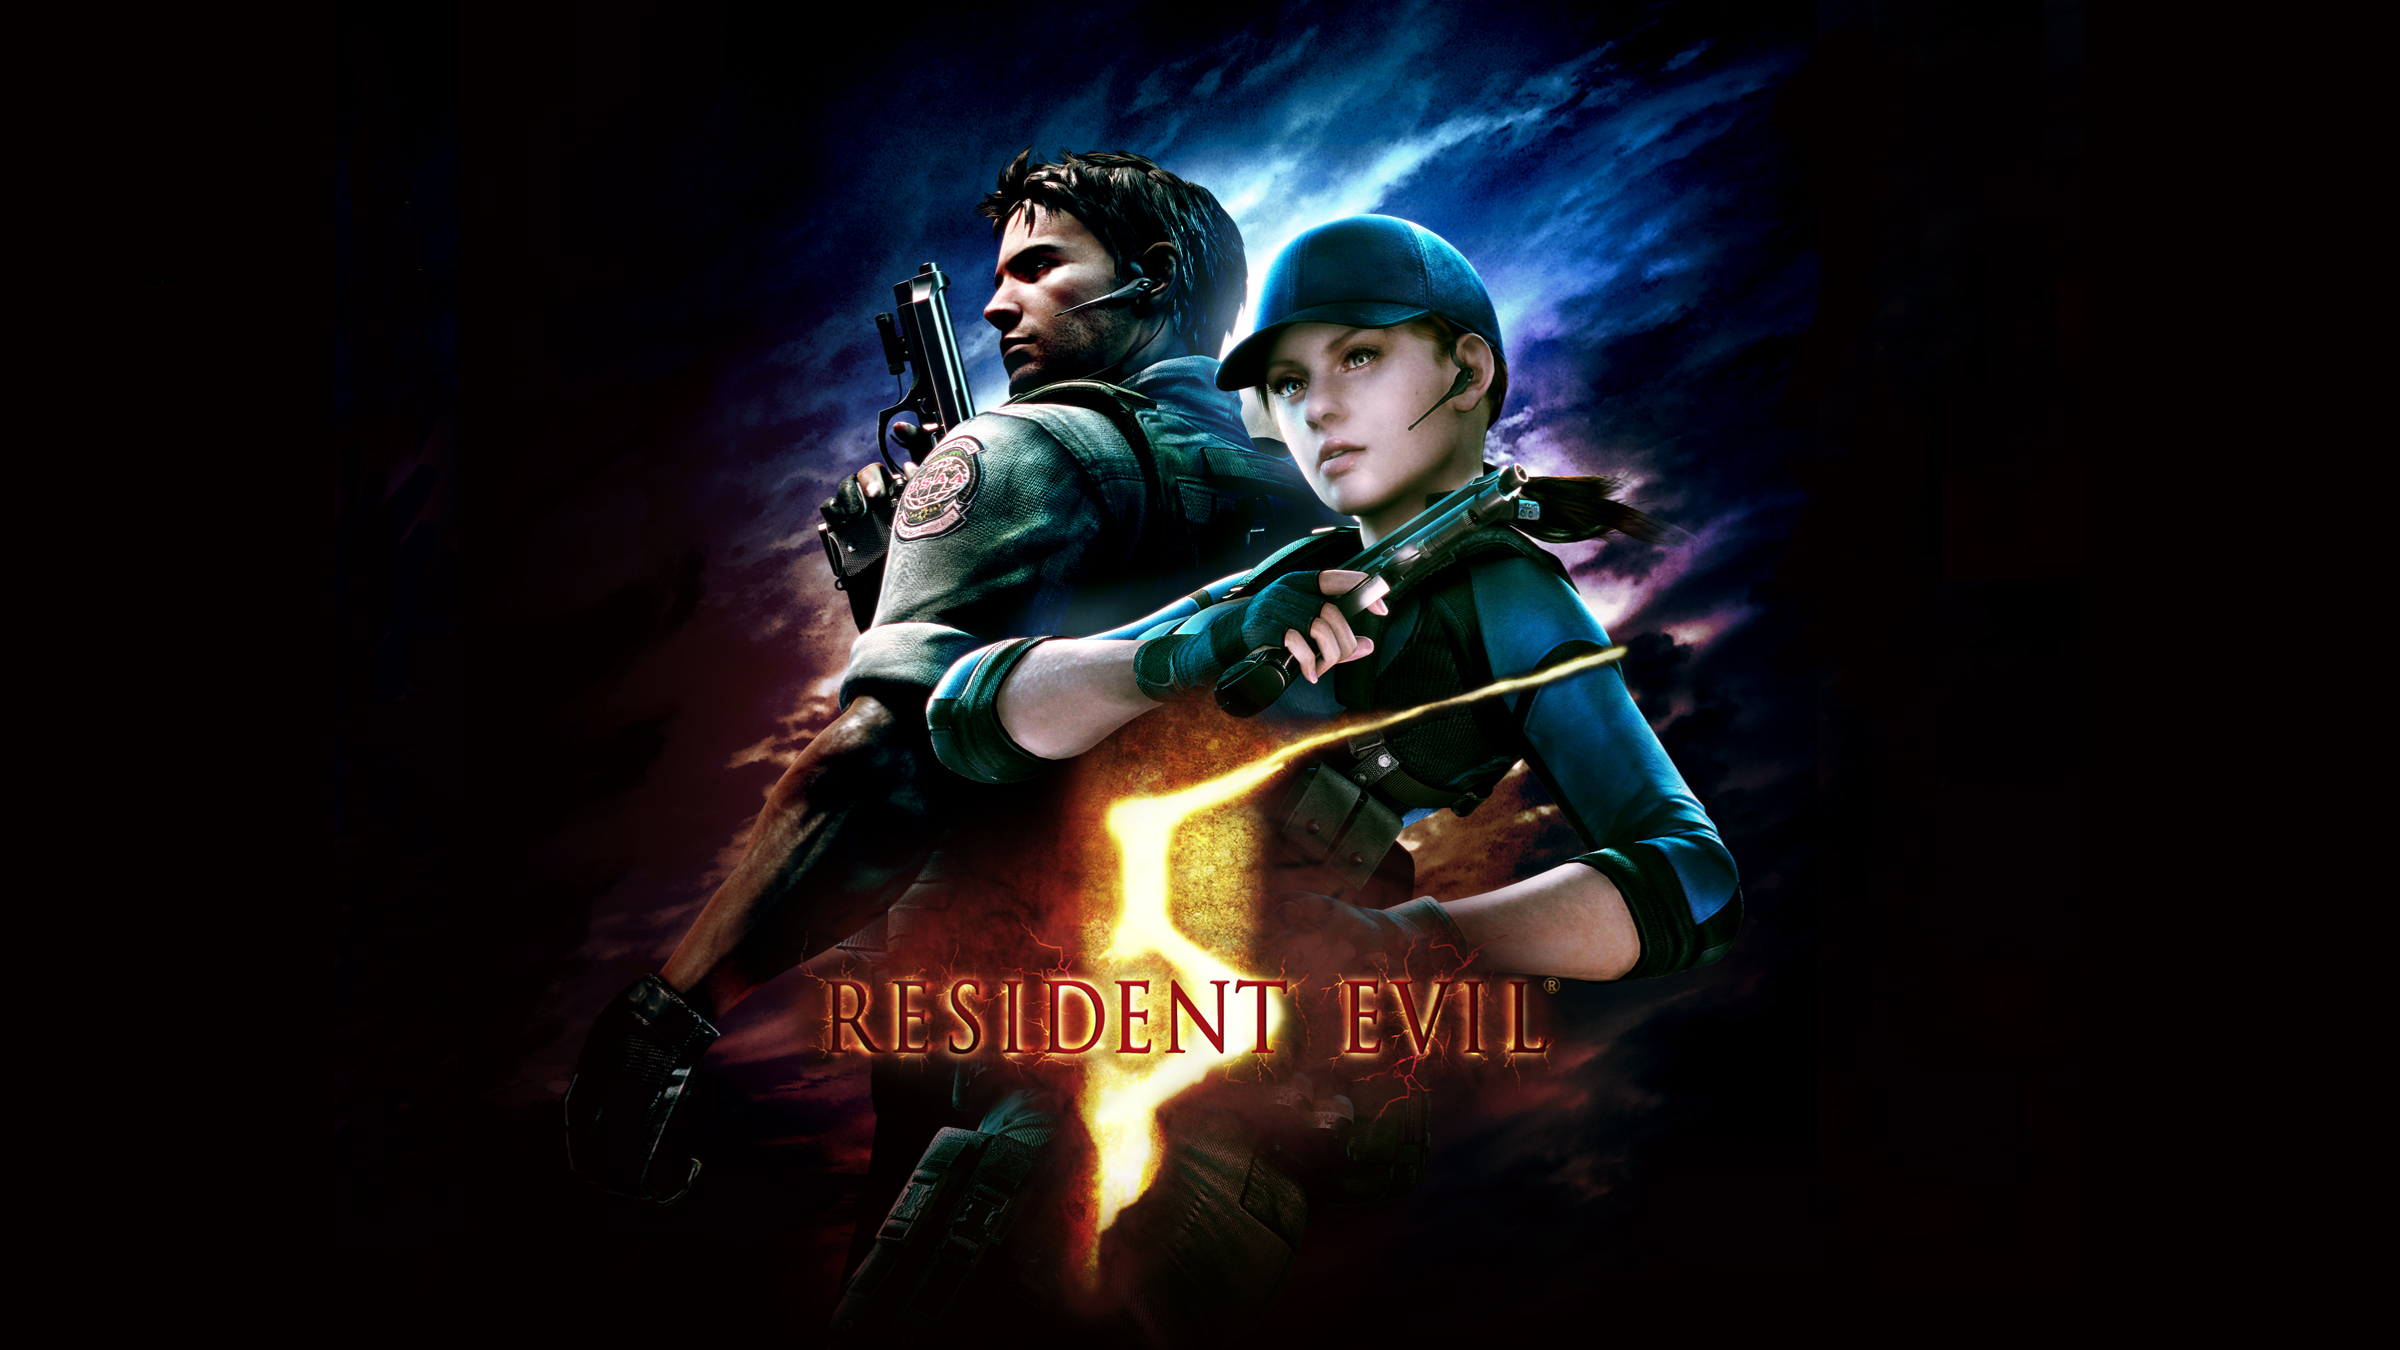 Resident Evil 5 Wallpaper Hd Games 4k Wallpapers Images Photos